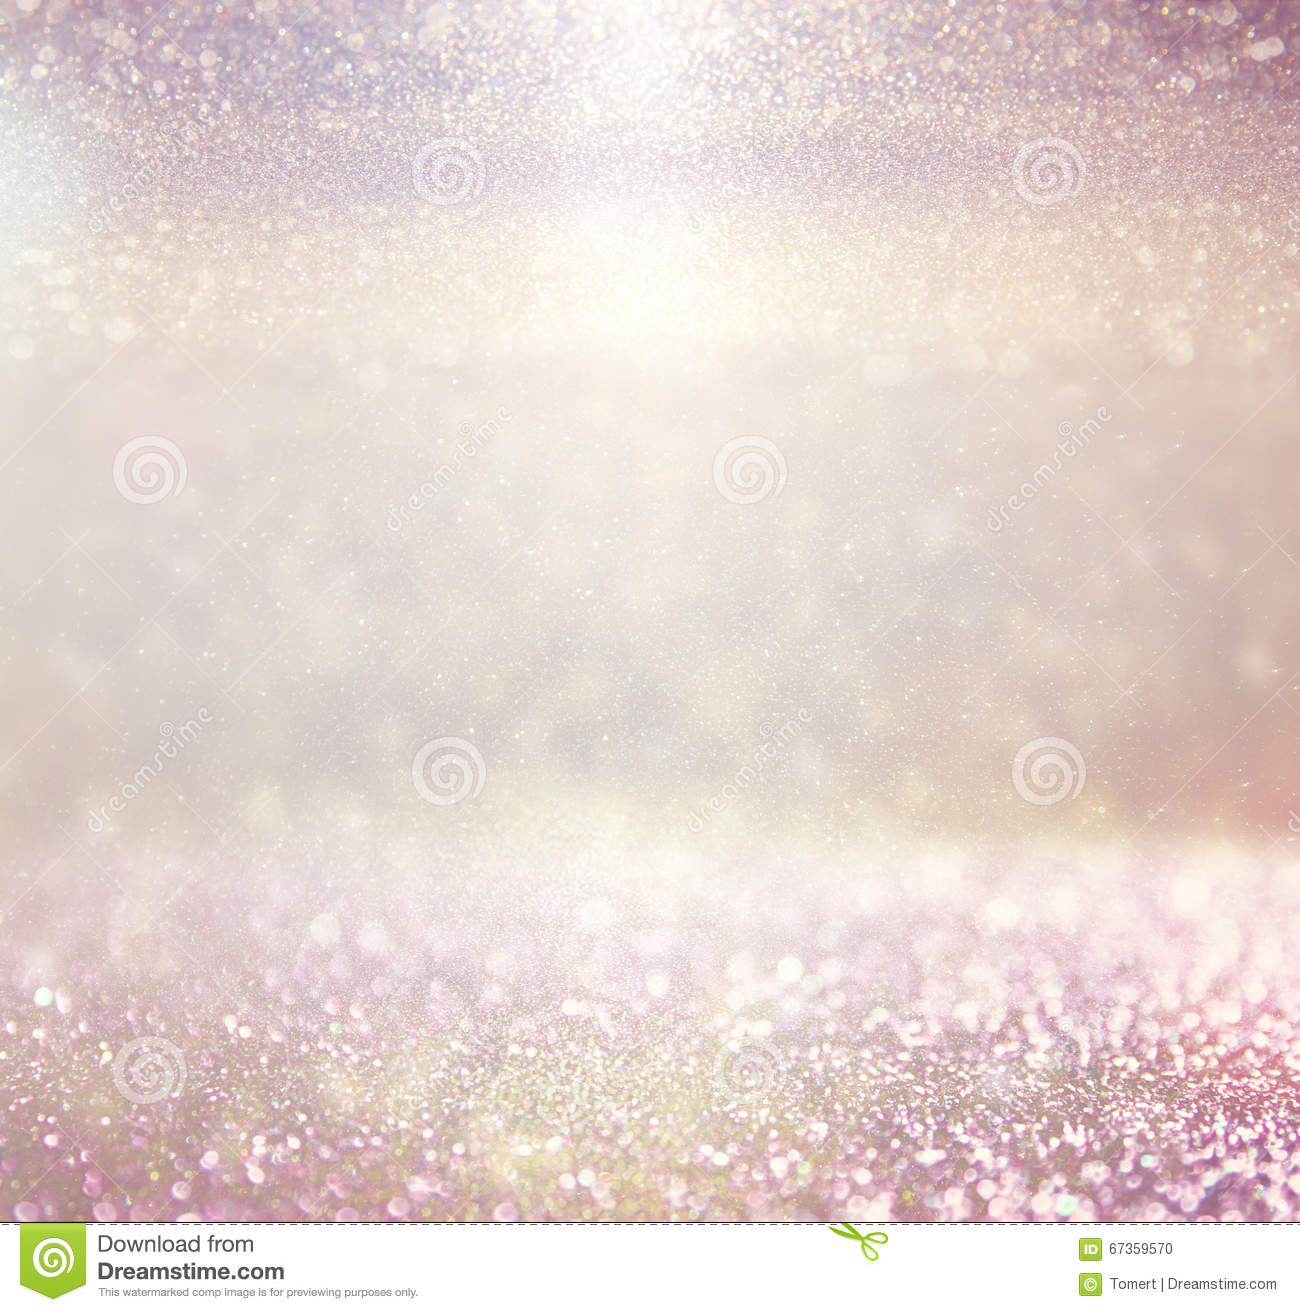 Defocused pink purple and gold lights background photo